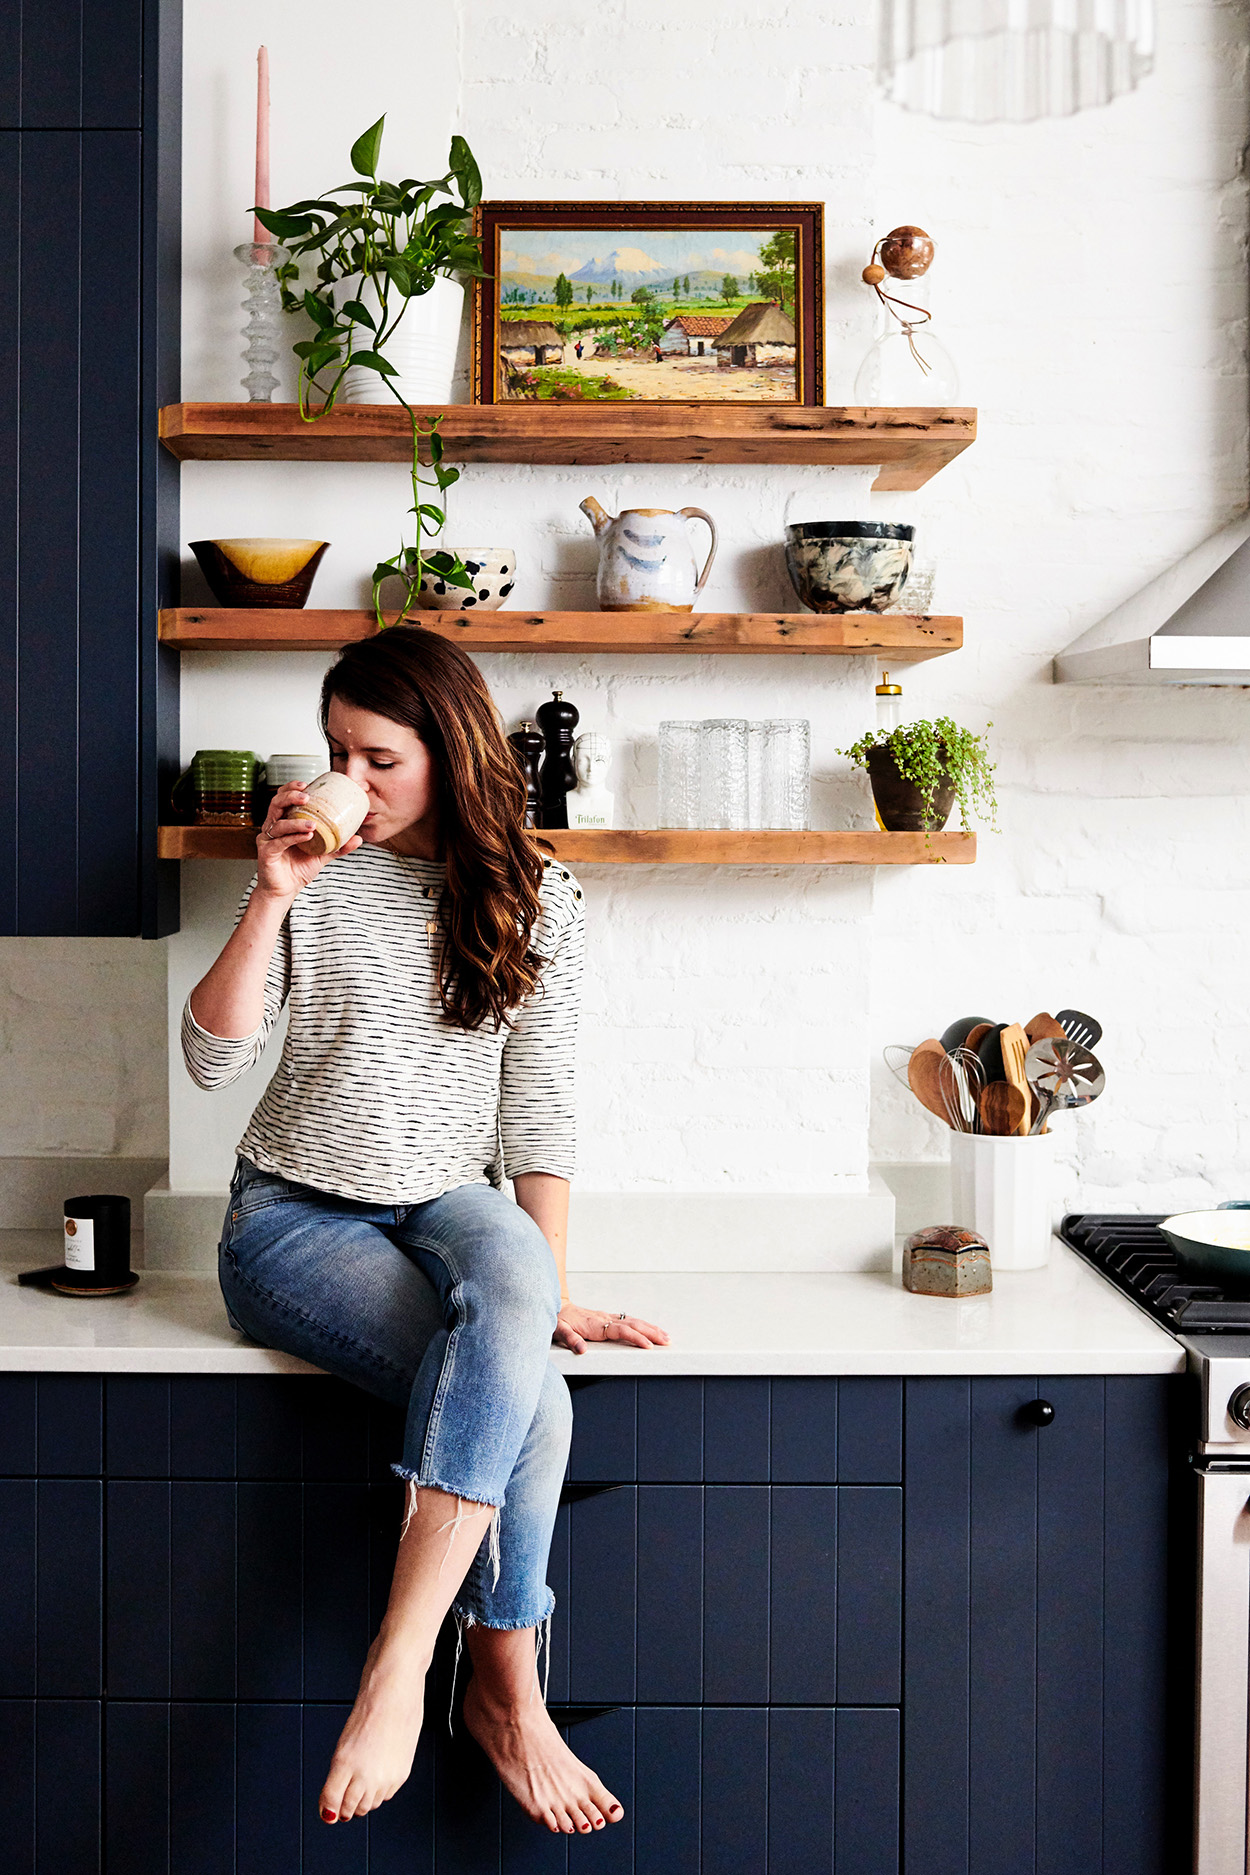 Photography: Kate Grewal   Creative Direction: The Why Creative   Interior, Lifestyle & Prop Styling: Limonata Creative